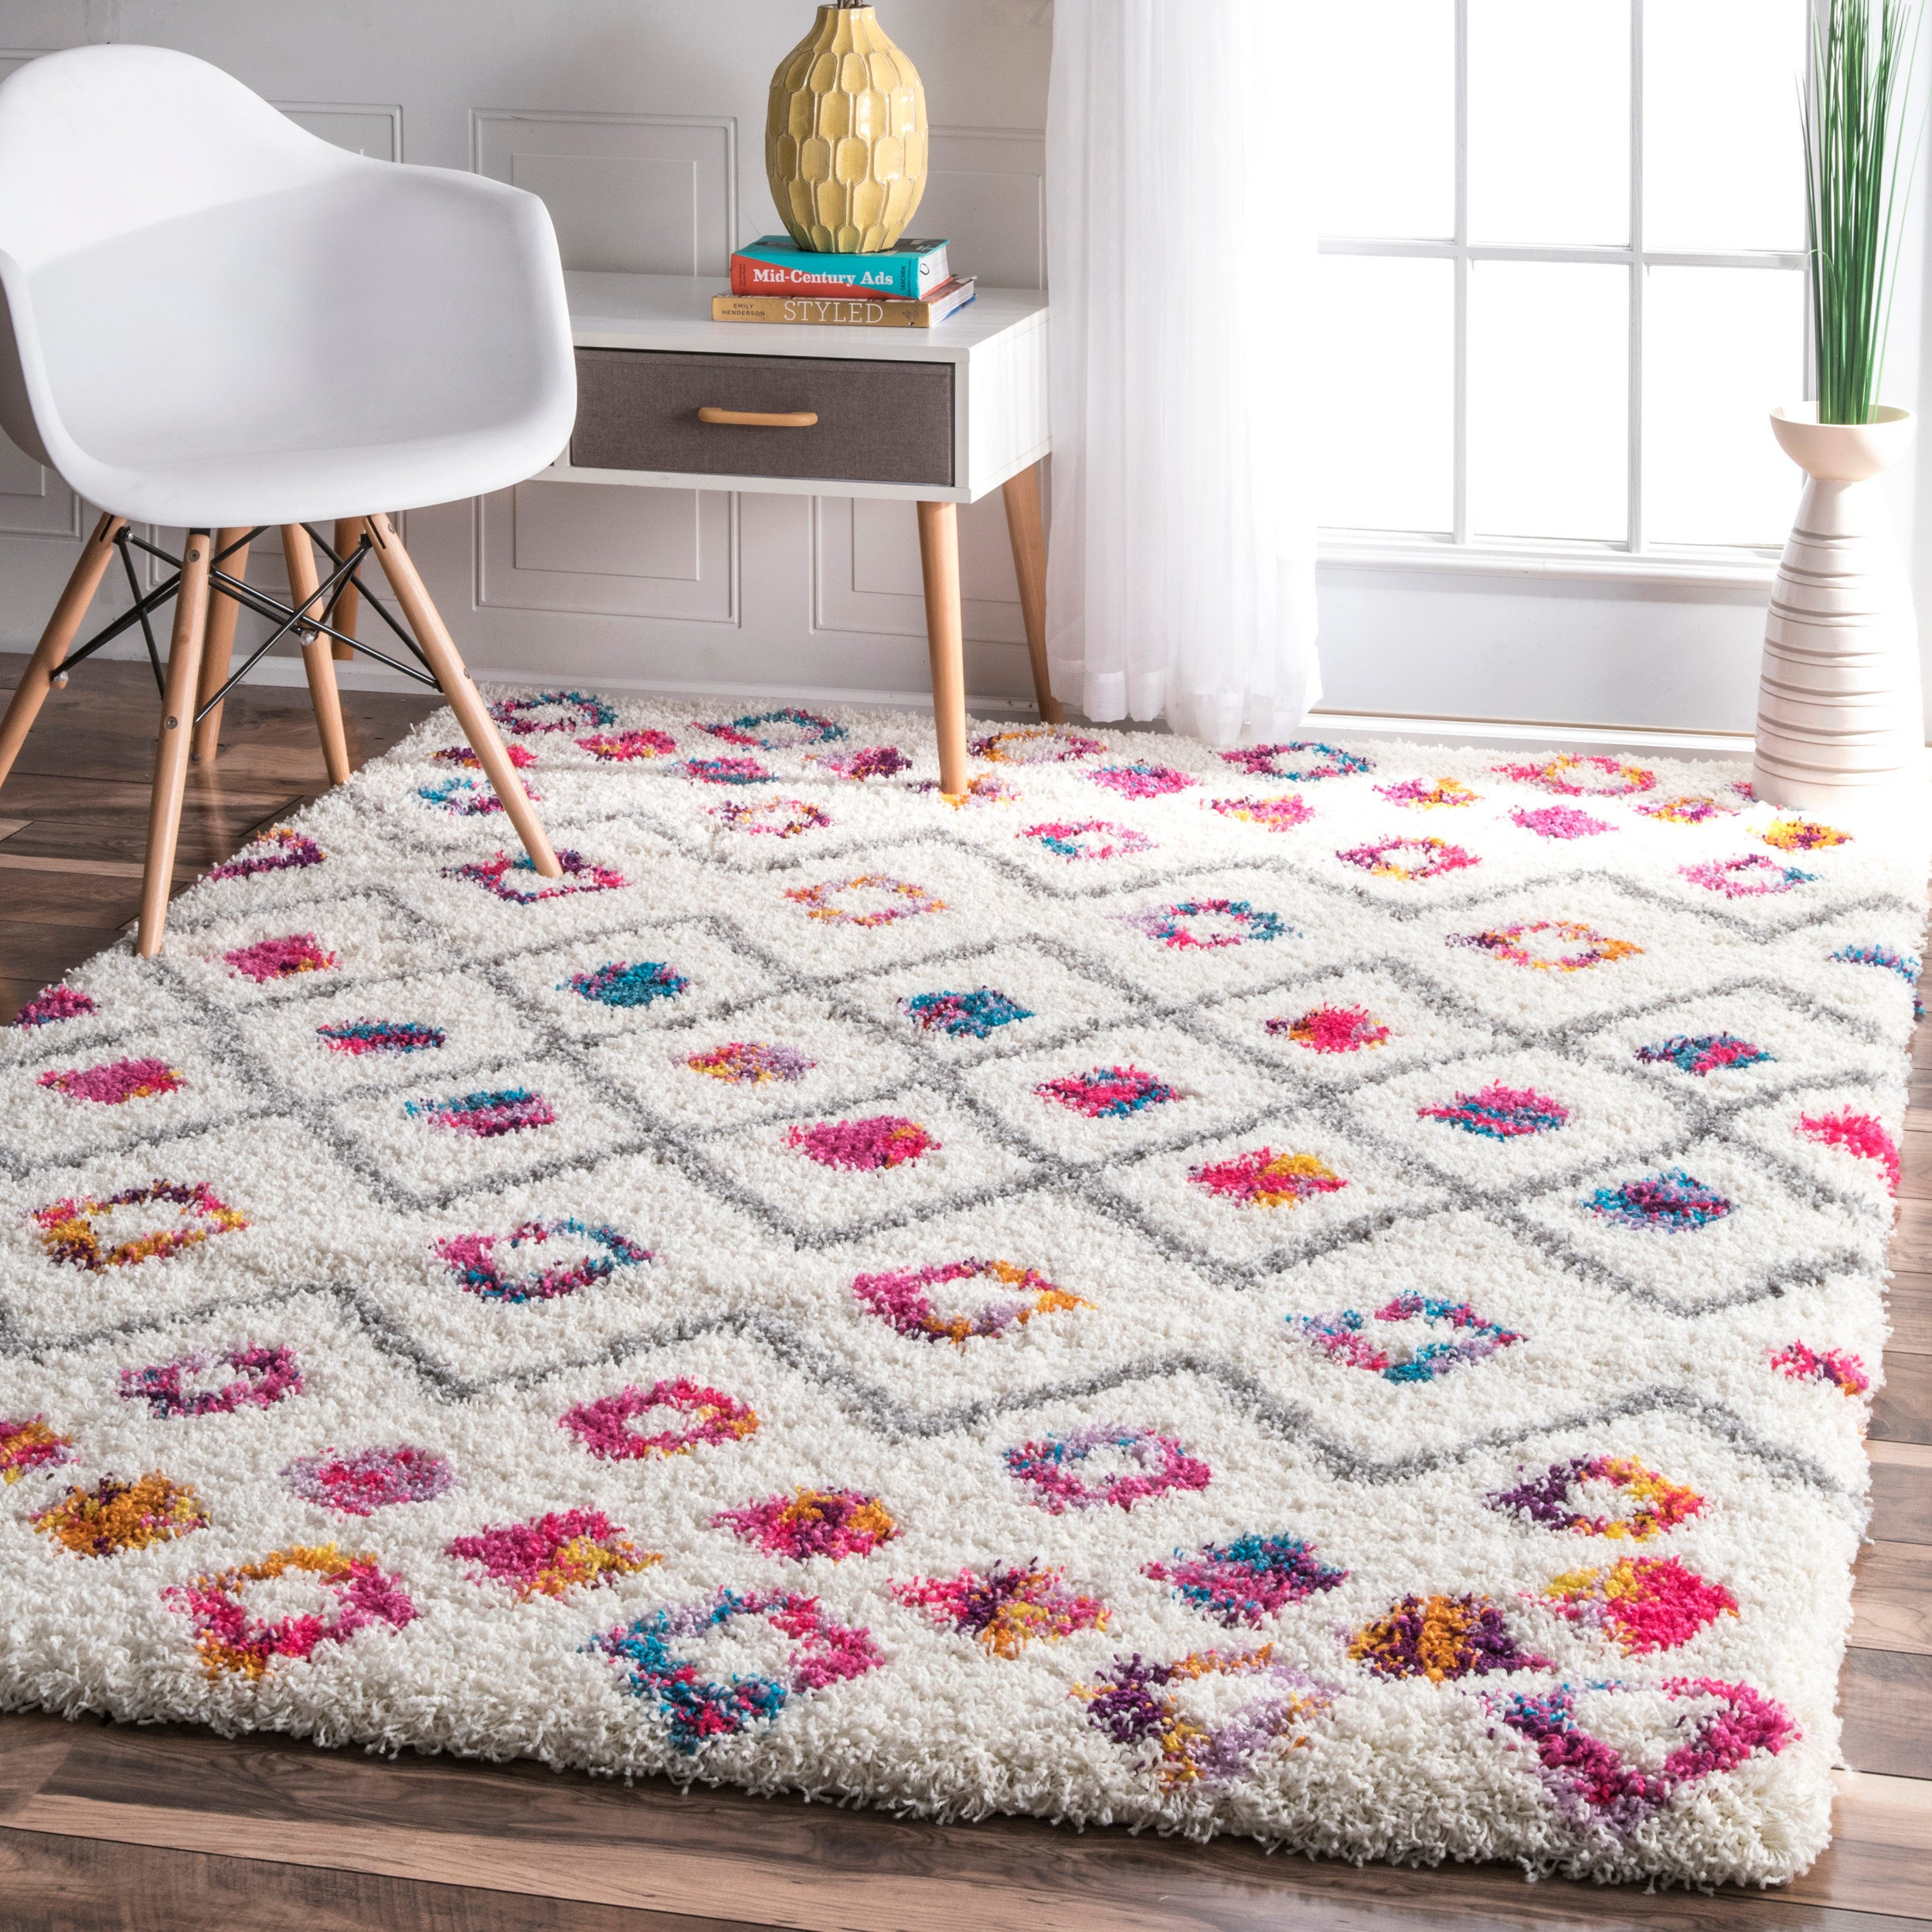 rug safavieh home x garden free monaco vintage overstock shipping multicolored distressed bohemian product today